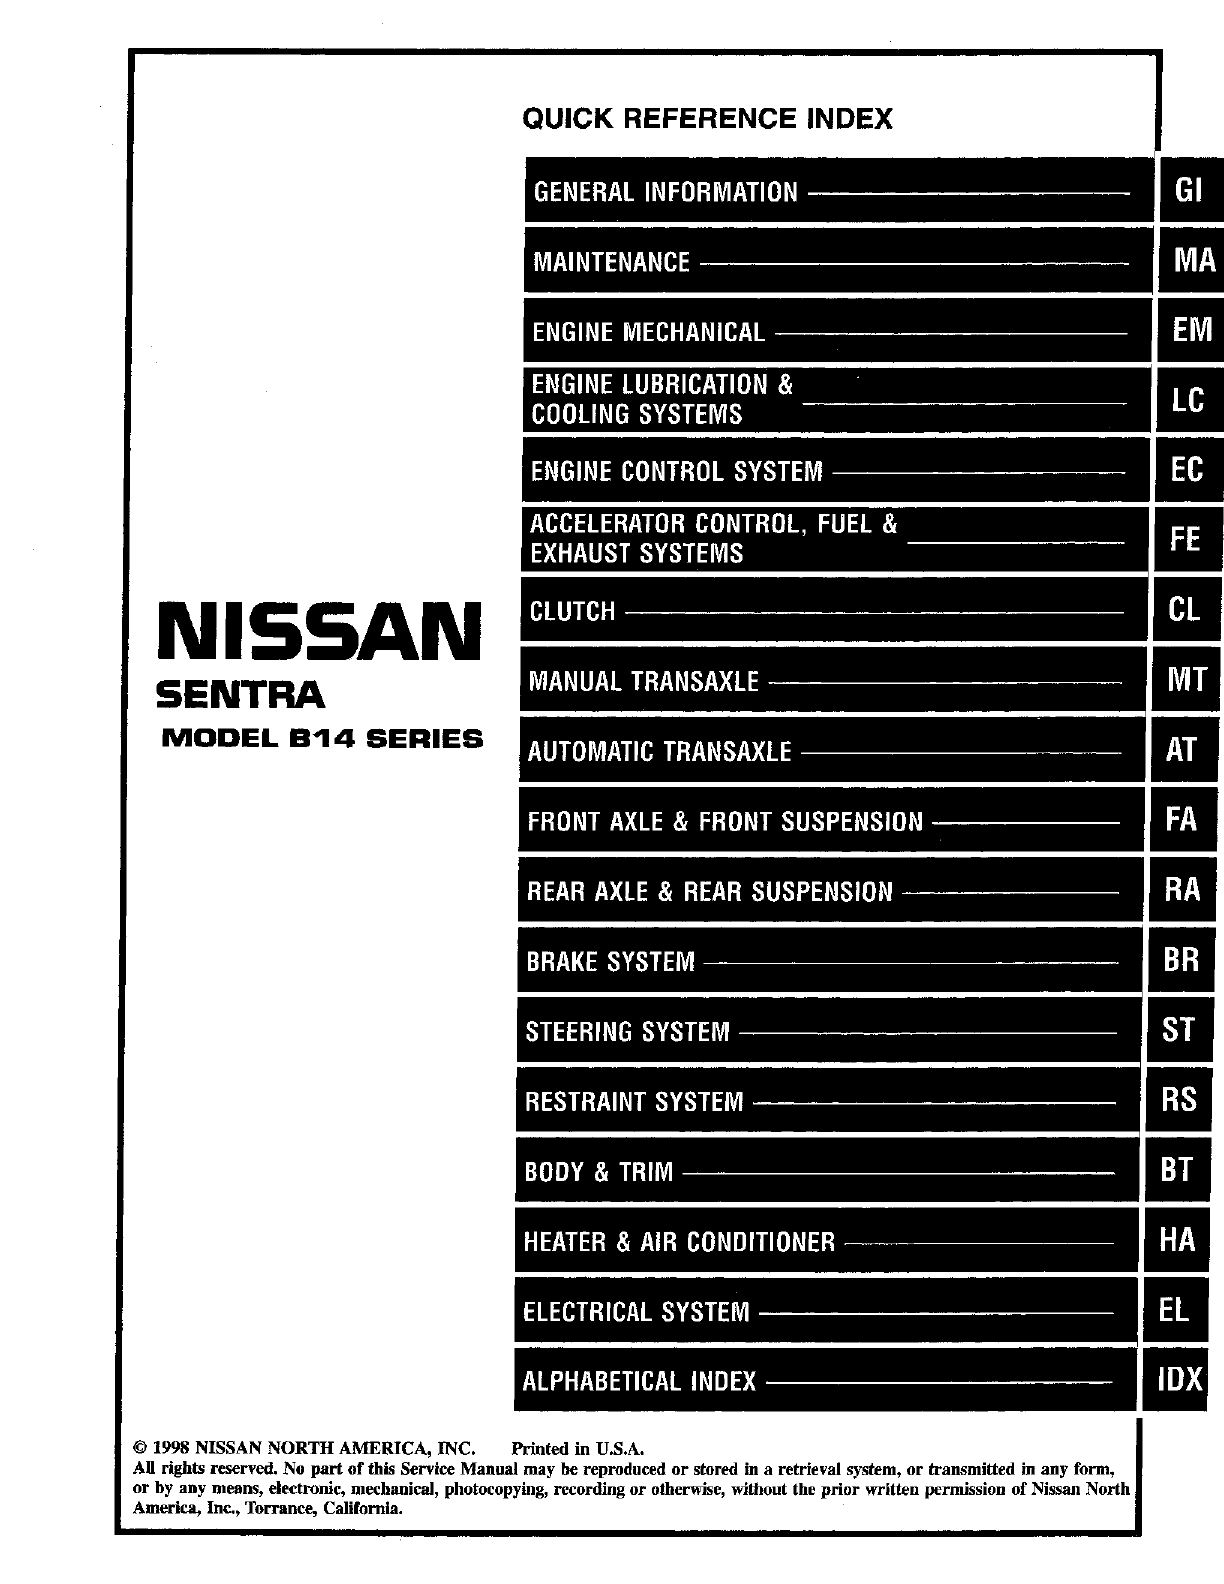 Nissan Sentra Service Manual: Radiator